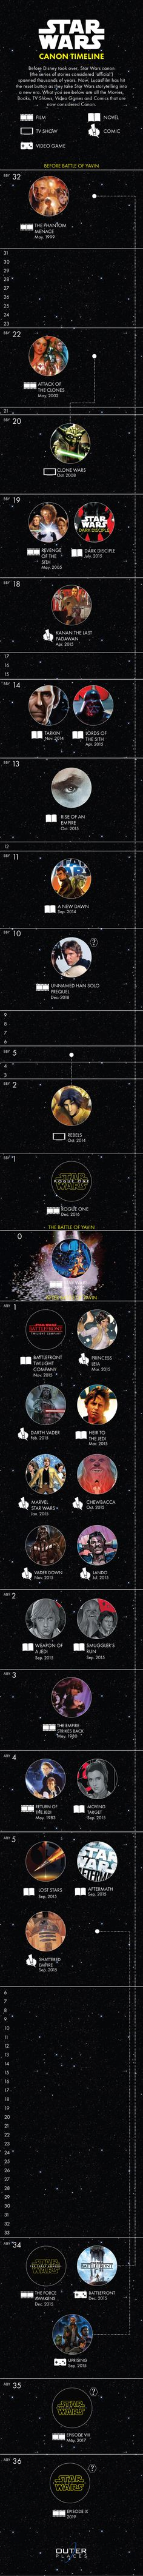 "A Timeline Of The New ""Star Wars"" Canon Reveals All That's Officially Happened 